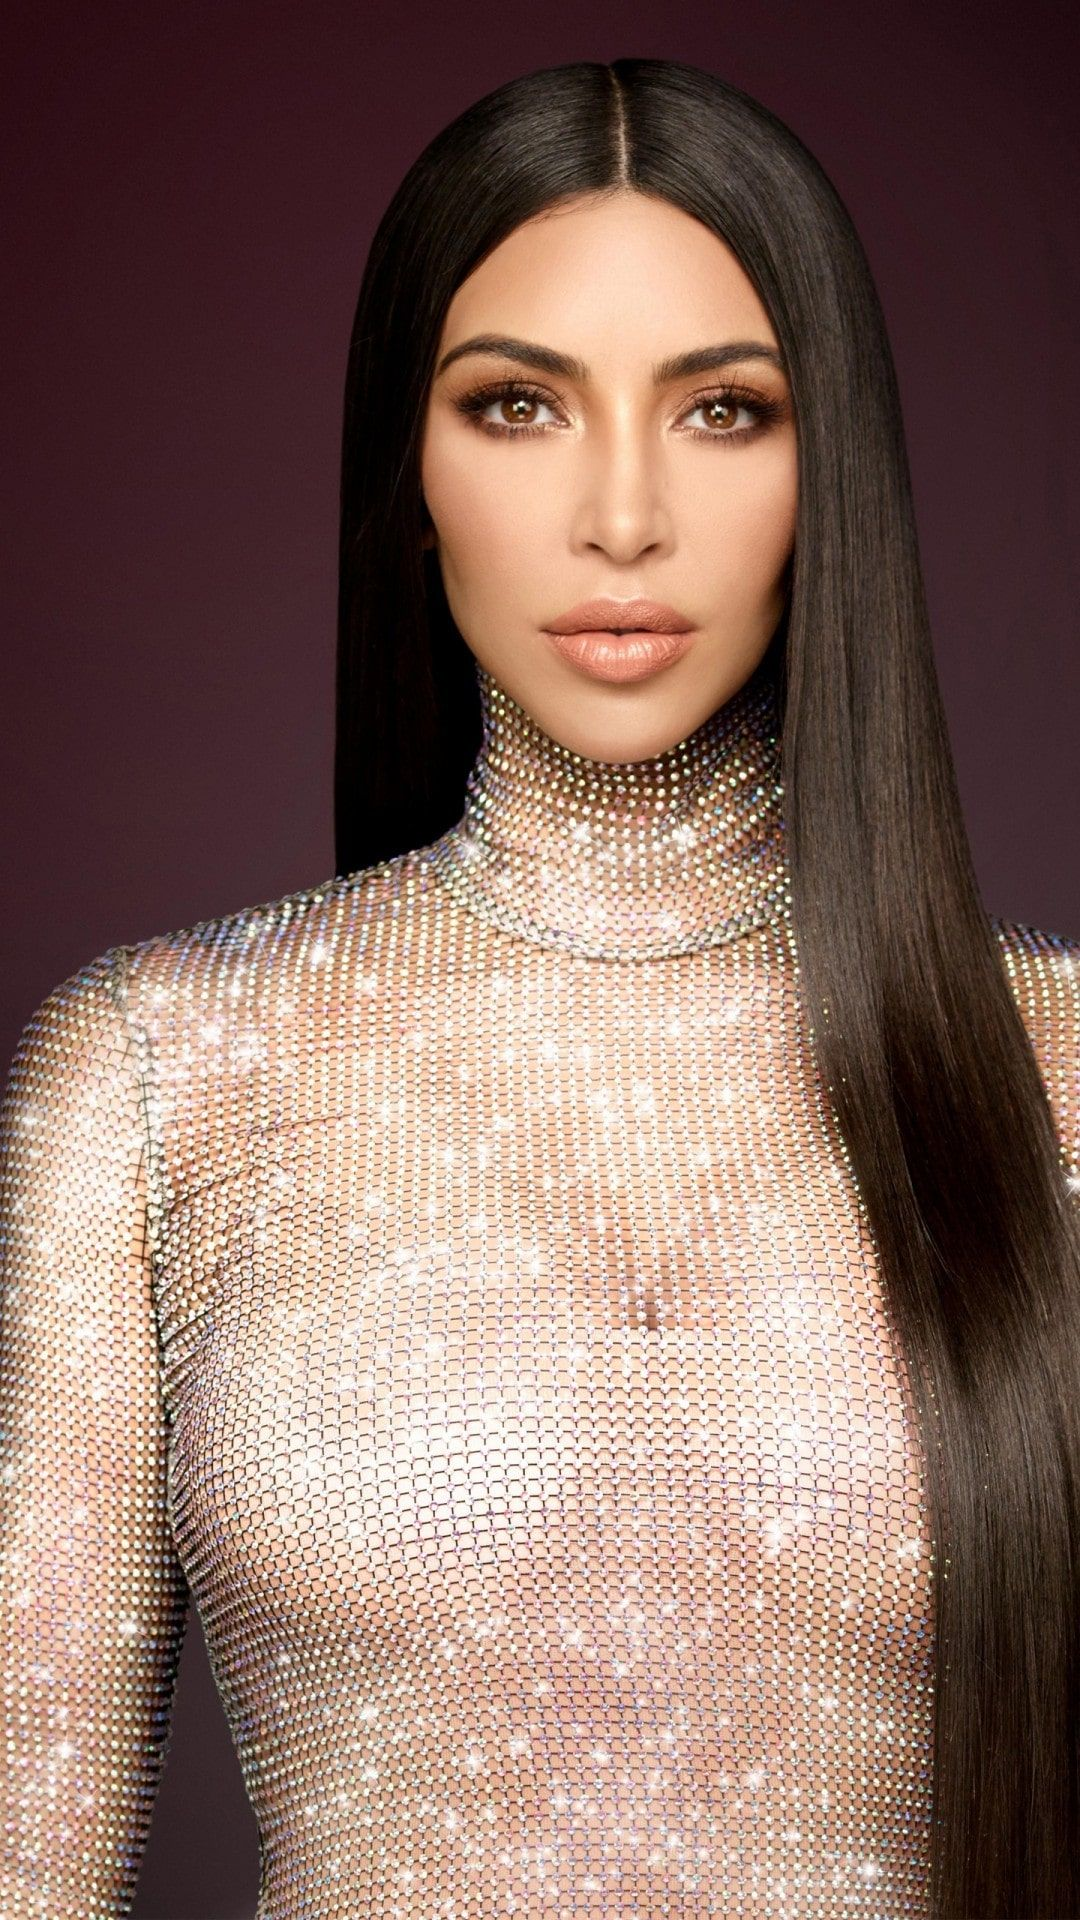 Kim Kardashian iPhone Wallpapers   Top Kim Kardashian iPhone